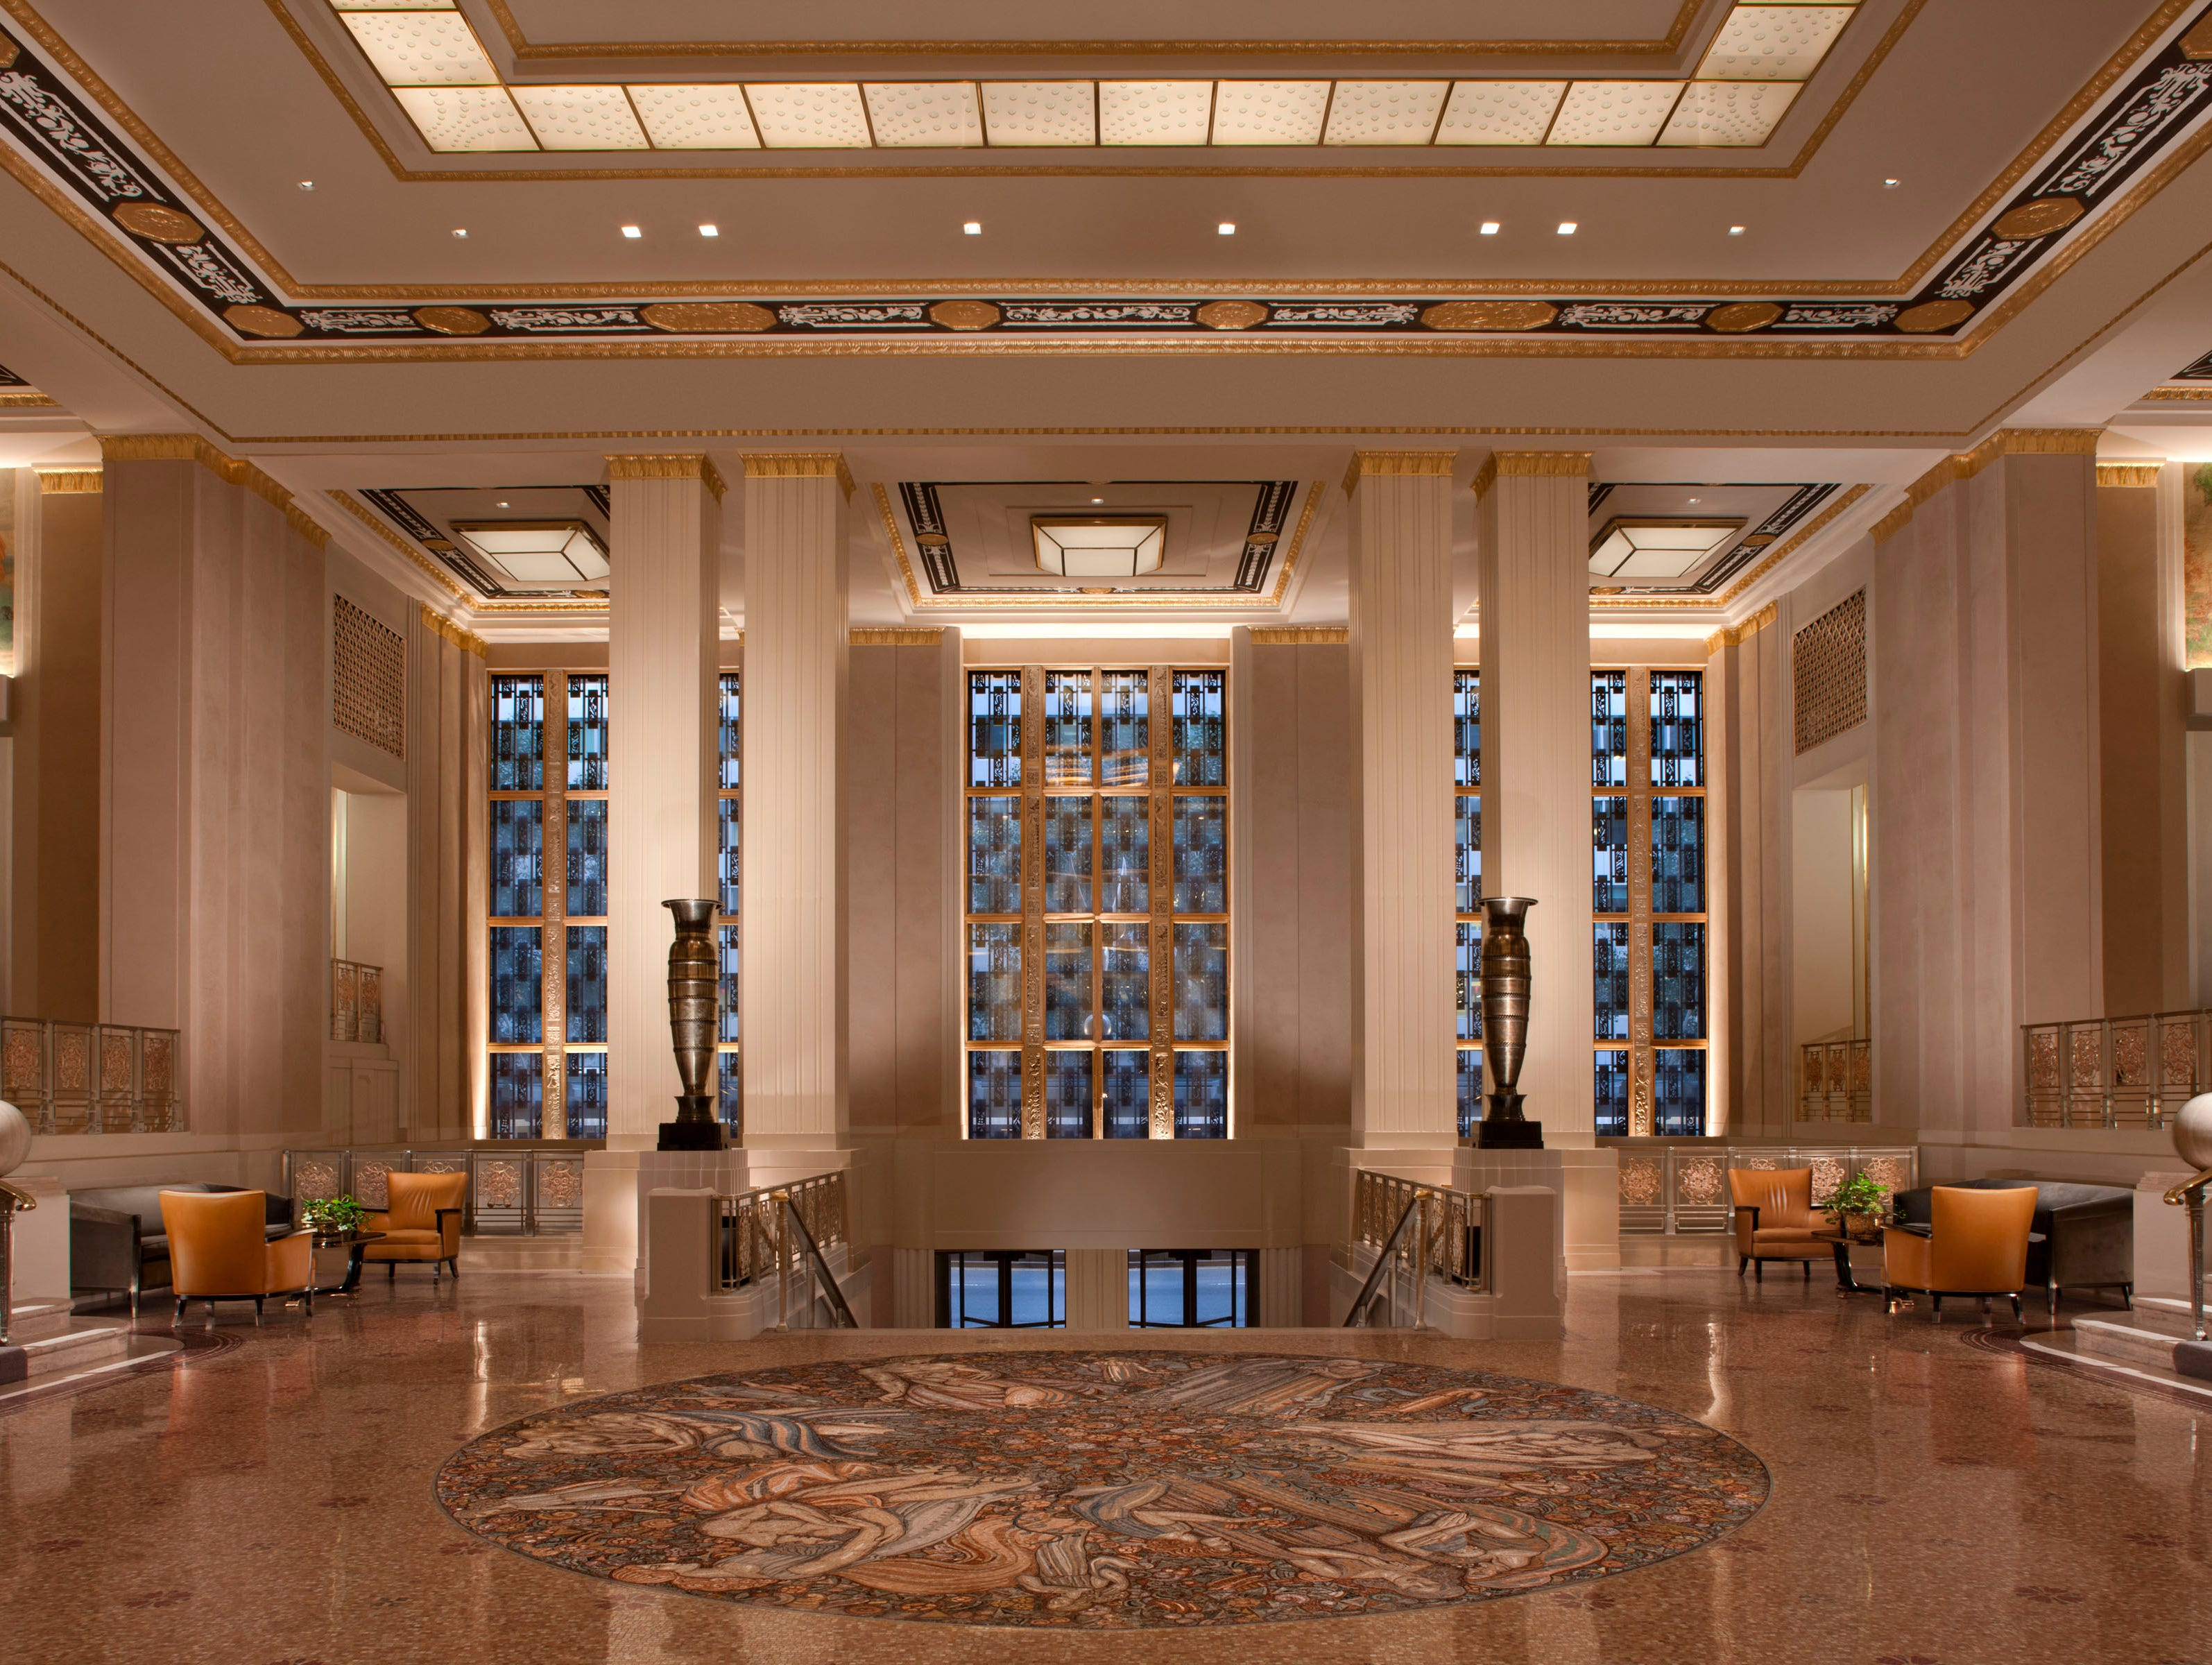 The famed Waldorf Astoria Hotel in New York City recently renovated its Park Avenue lobby, emphasizing clean lines, geometric patterns and a lighter feel.